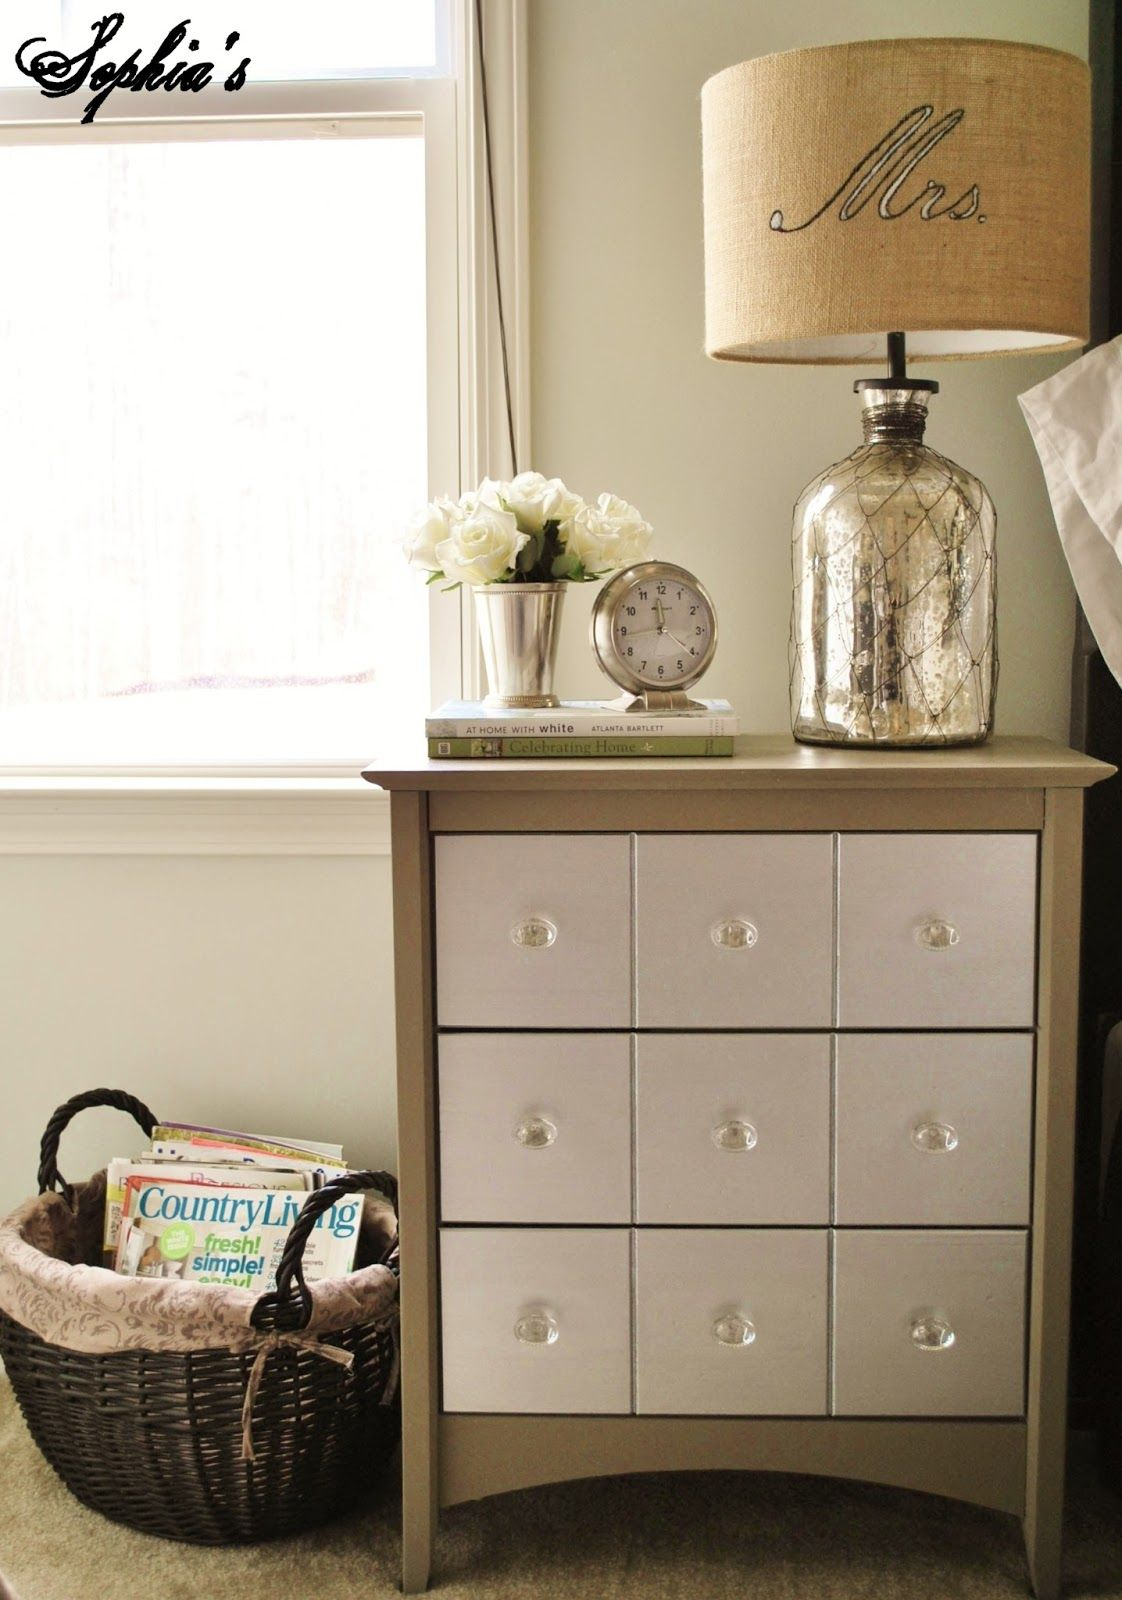 Make False Front On Dresser Drawers To Look Like This Like The Two Toned Look And Glass Knobs